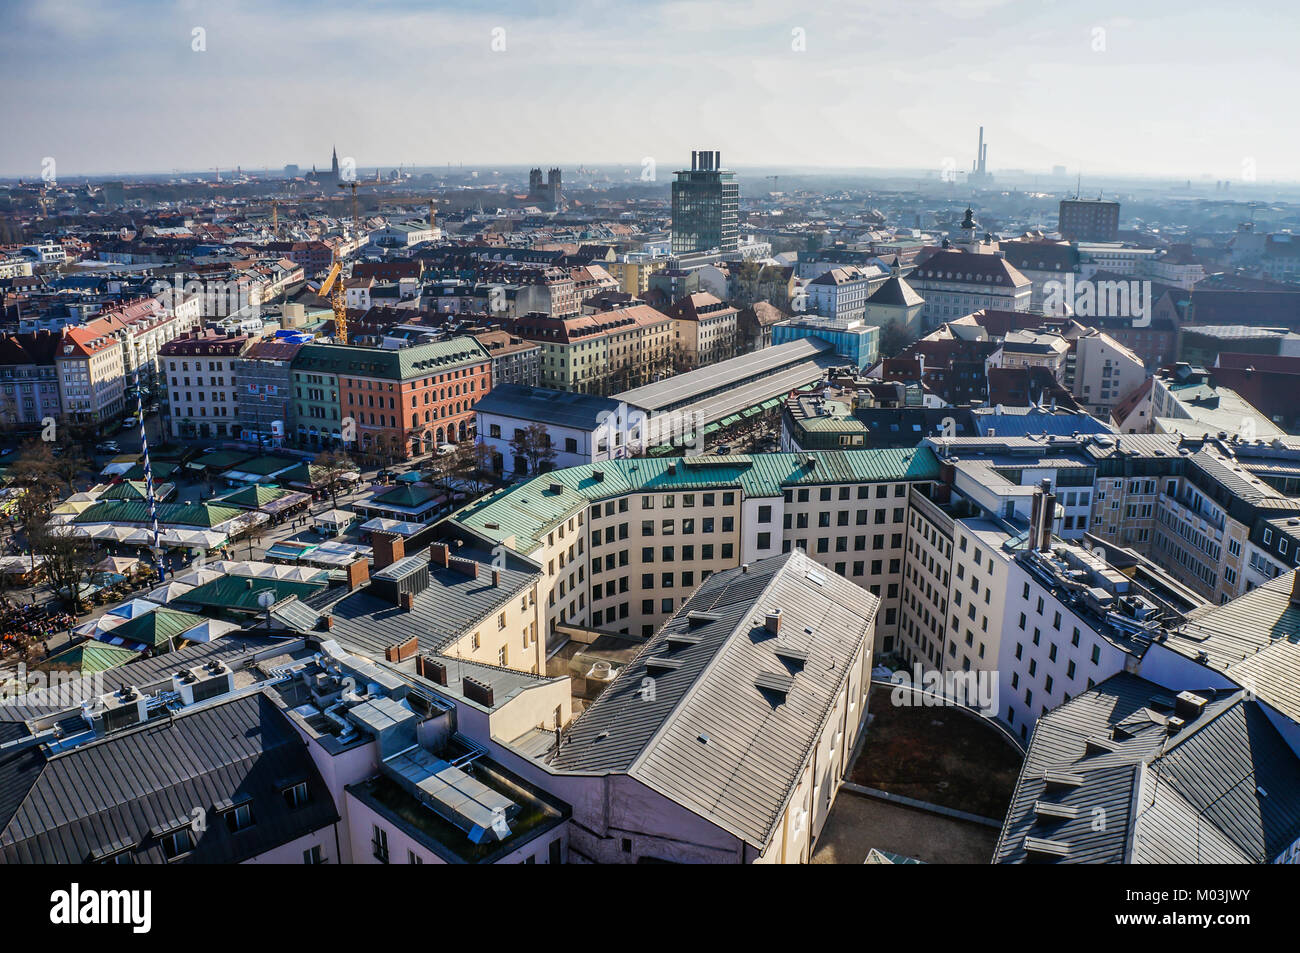 Panorama view of Munich city center. - Stock Image